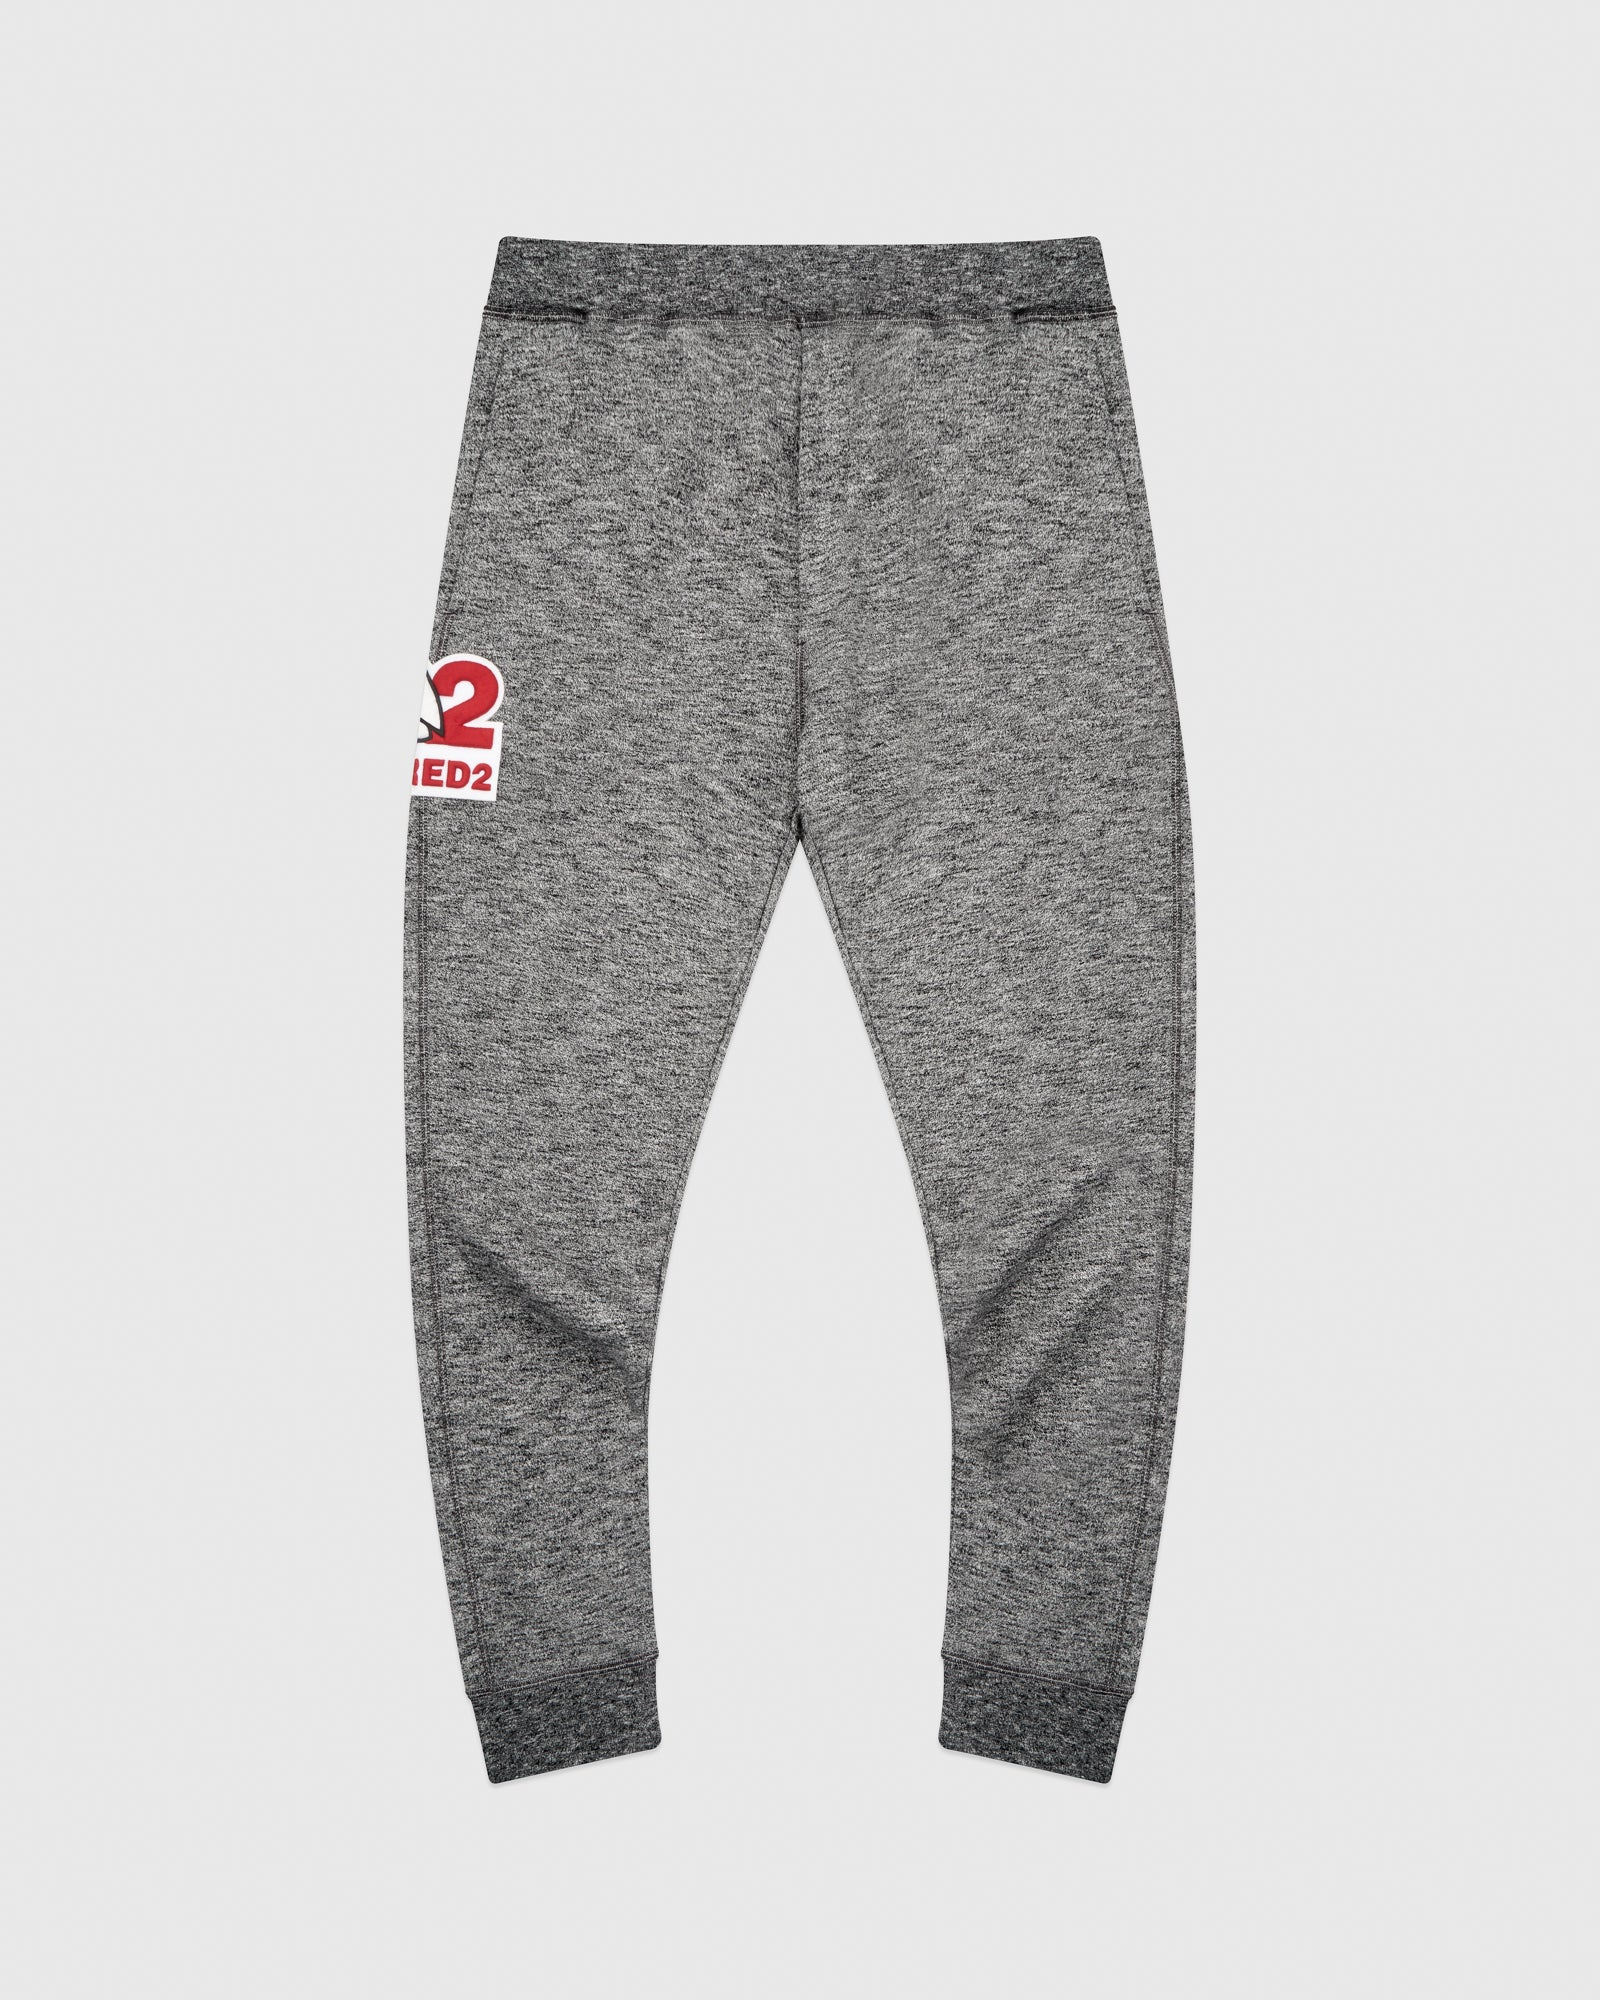 OVO x DSQUARED2 SWEATPANT - GREY IMAGE #1